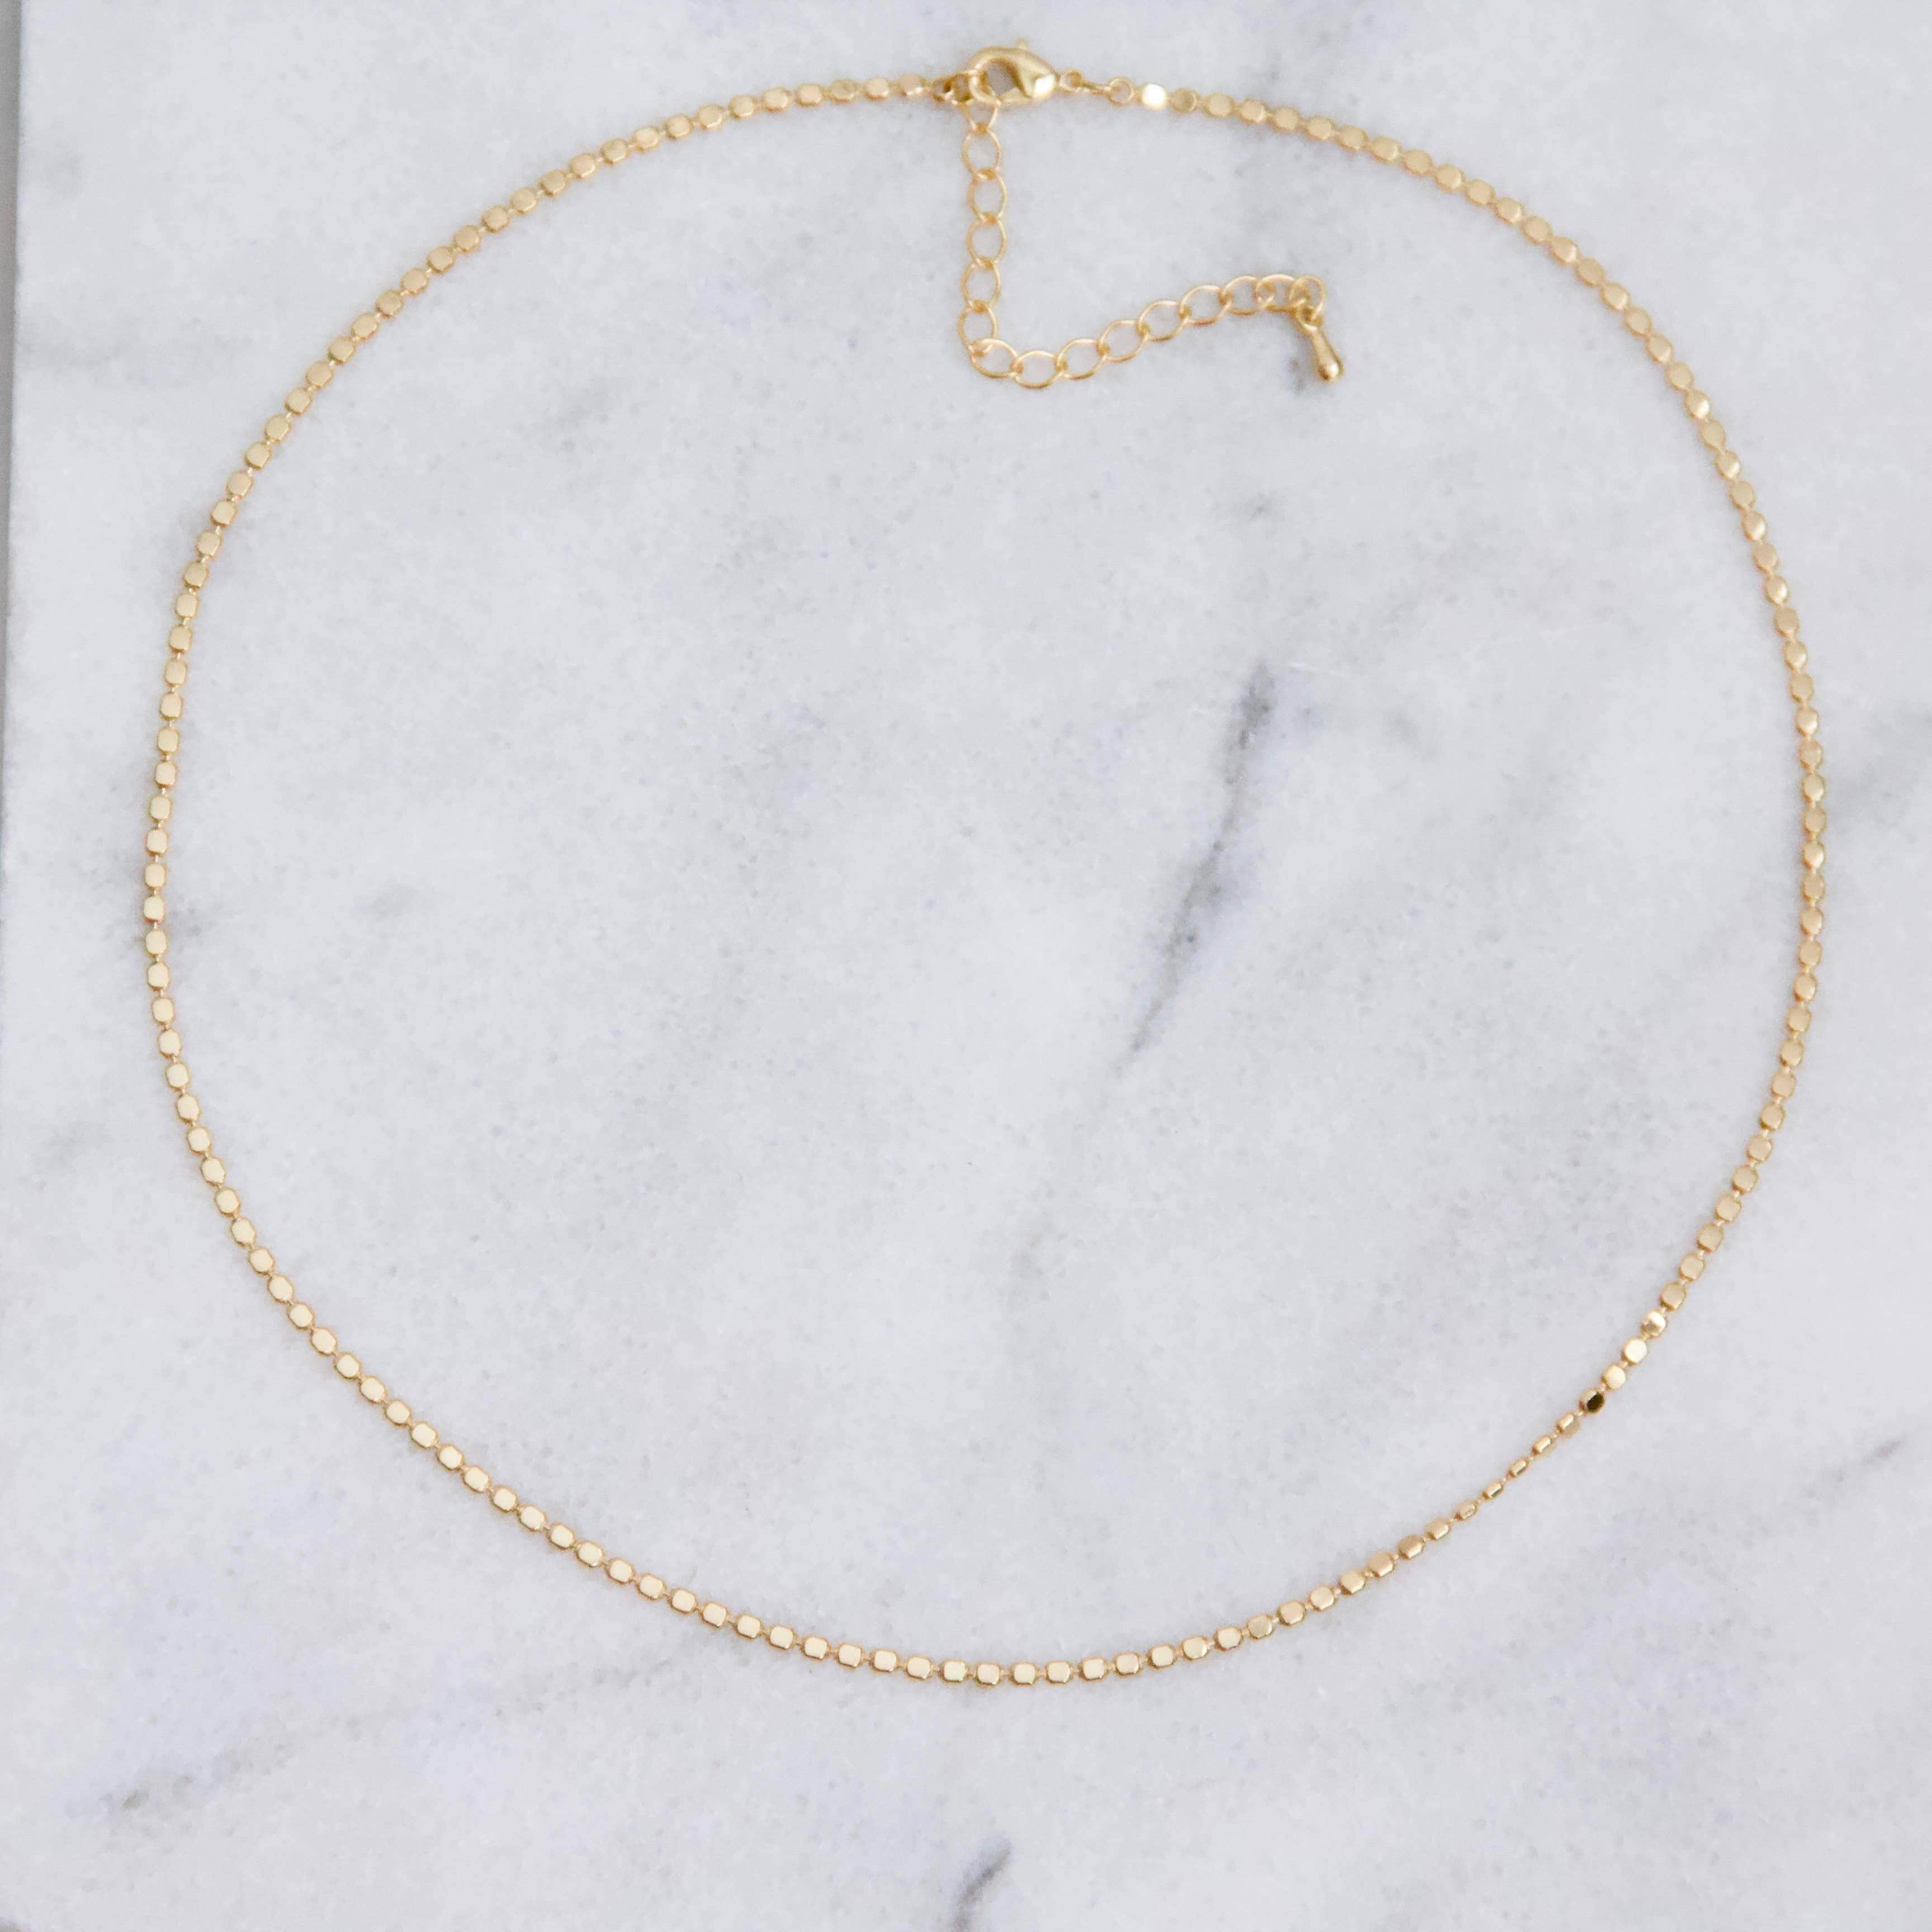 Fancy Coin Choker Necklace